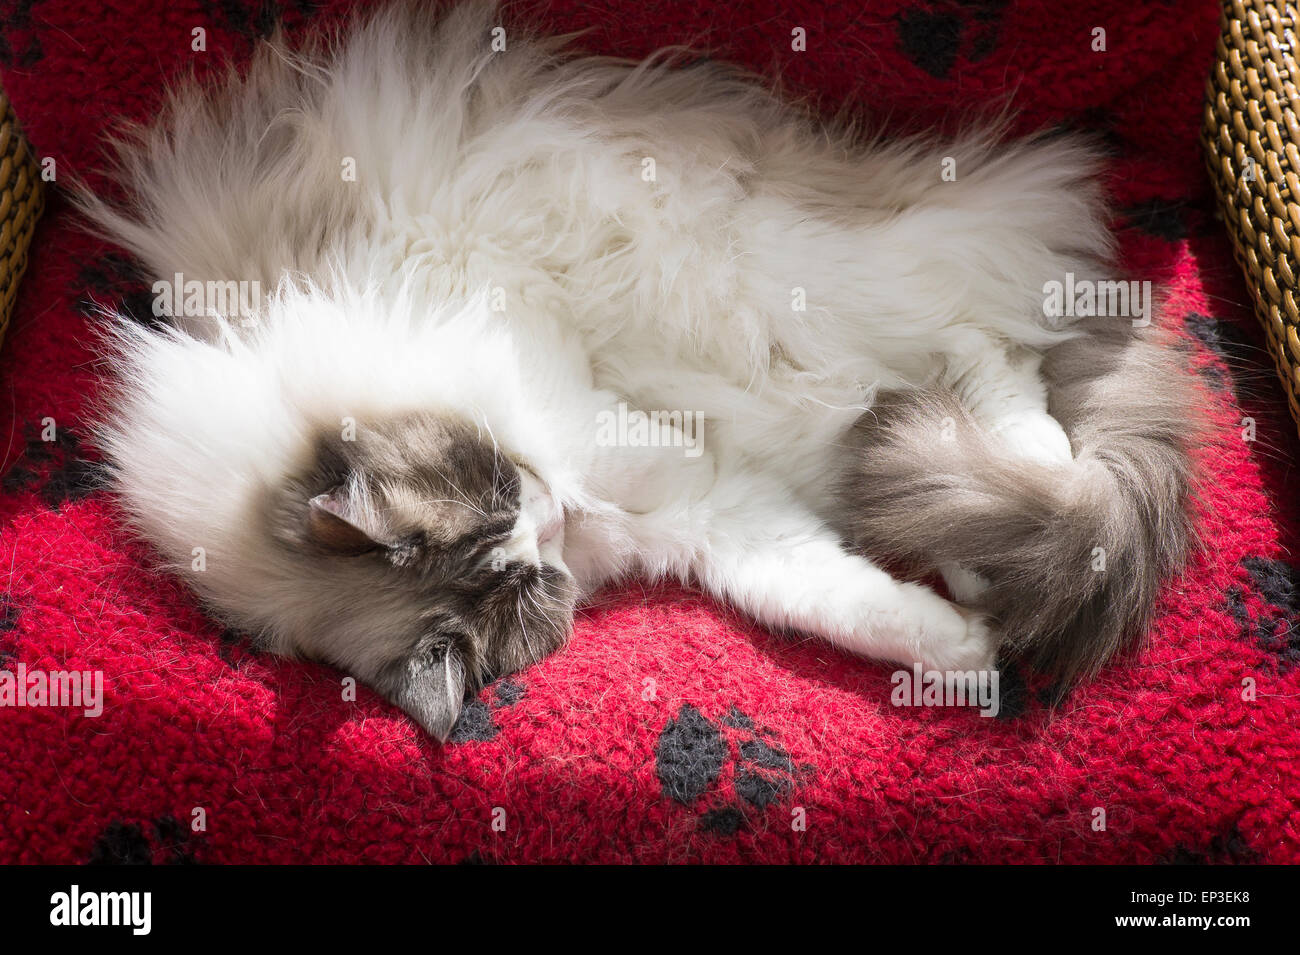 Ragdoll male cat asleep in his bed - Stock Image